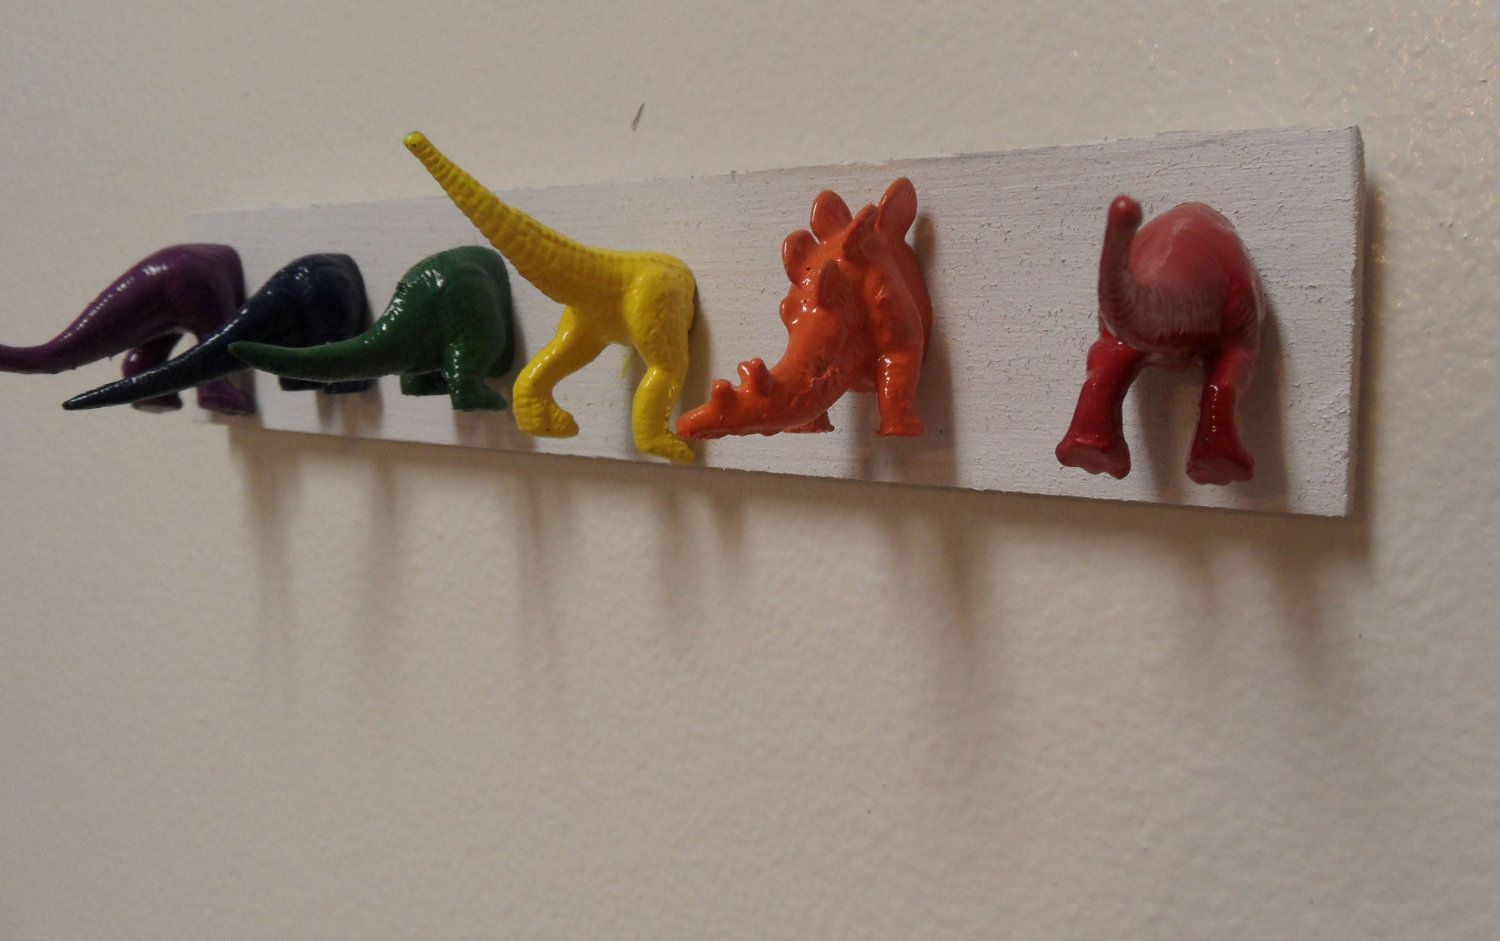 Dinosaur Butts Towel Holder But With A Neutral Color